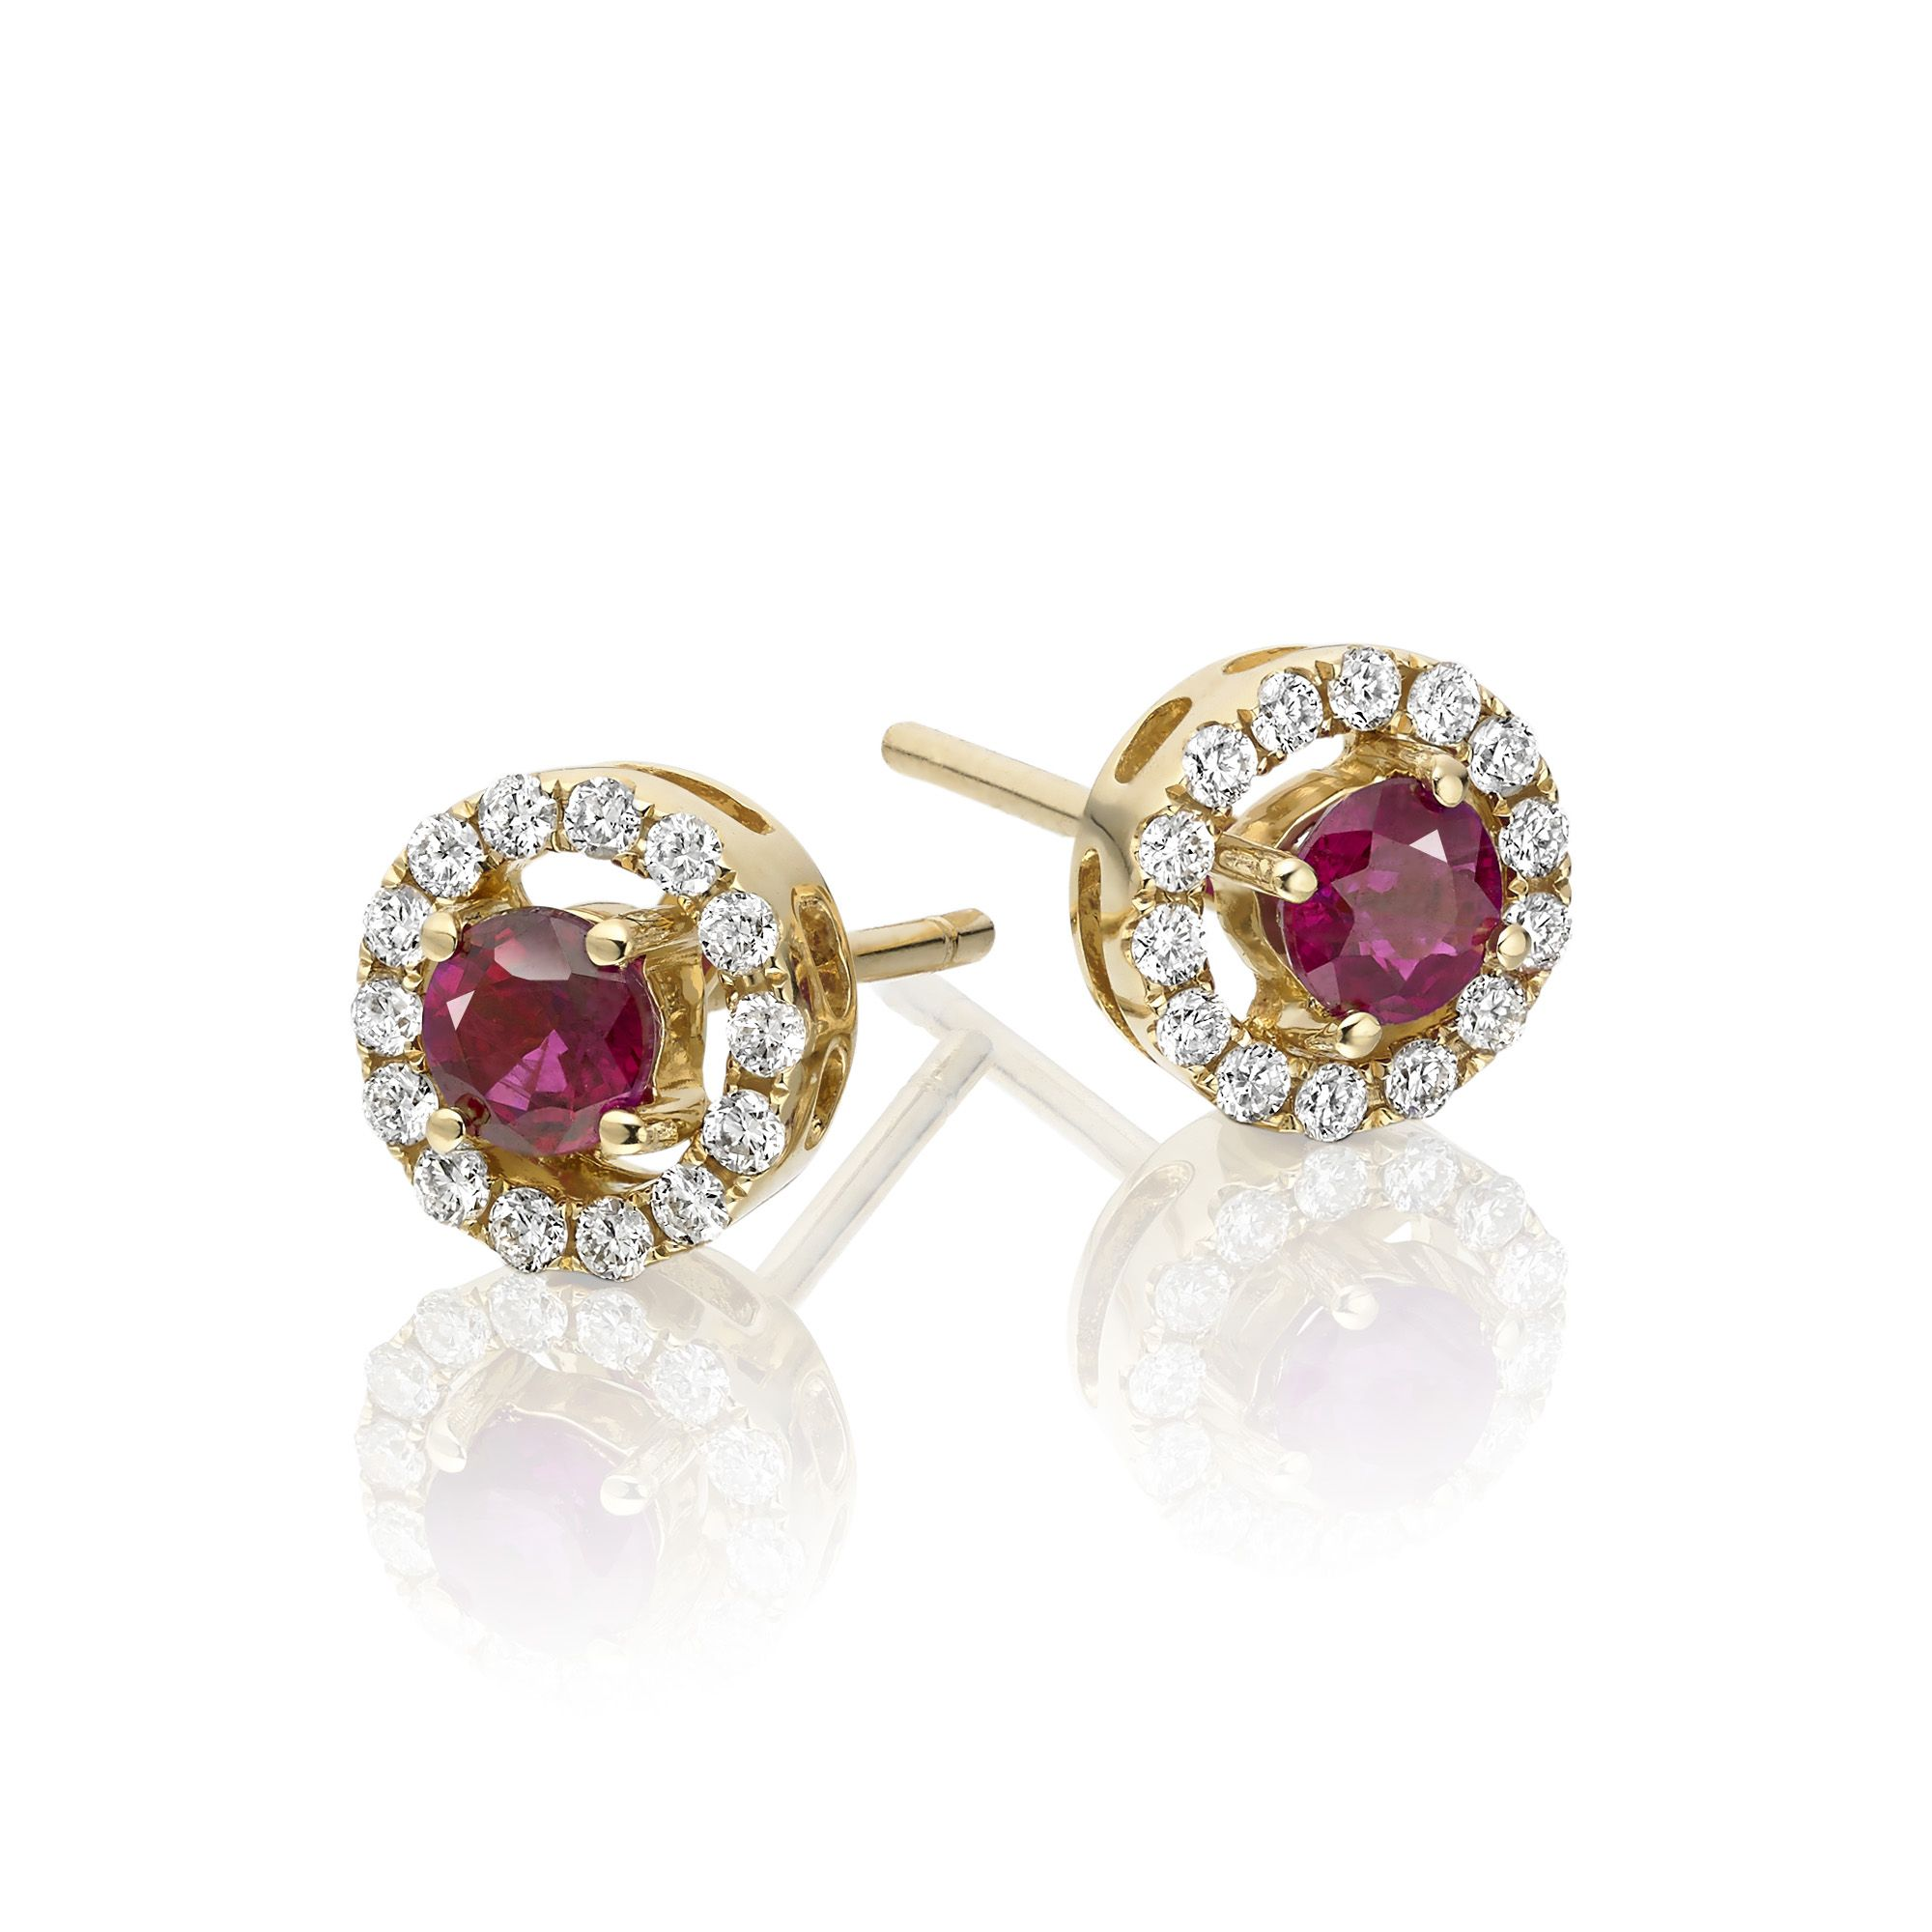 The traditionalsouthIndian 7 stone diamond stud is redefined in